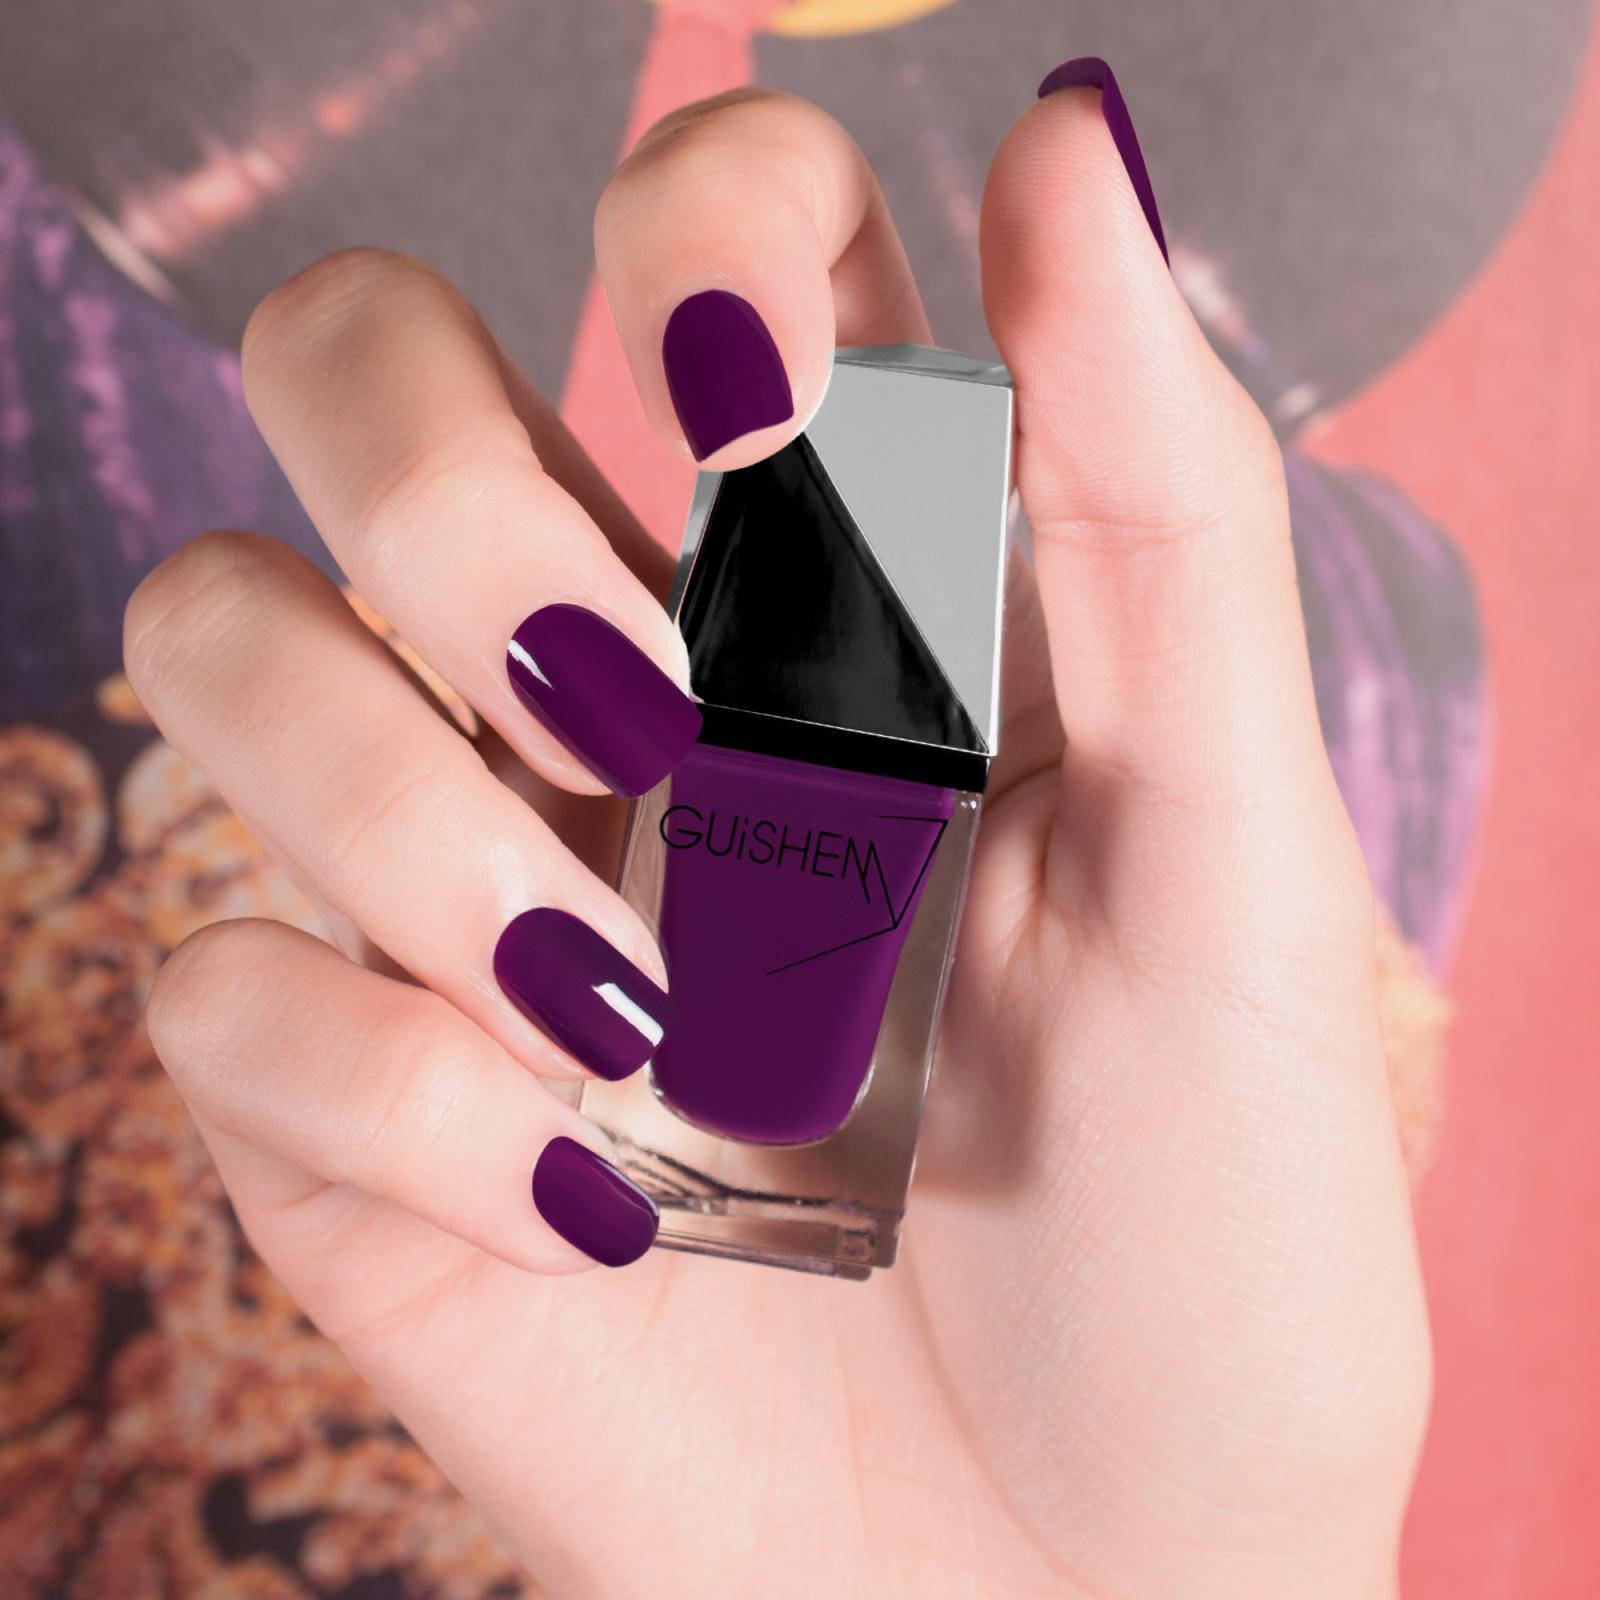 GUiSHEM Premium Nail Lacquer Crème Grape Juice, Imperial - 061